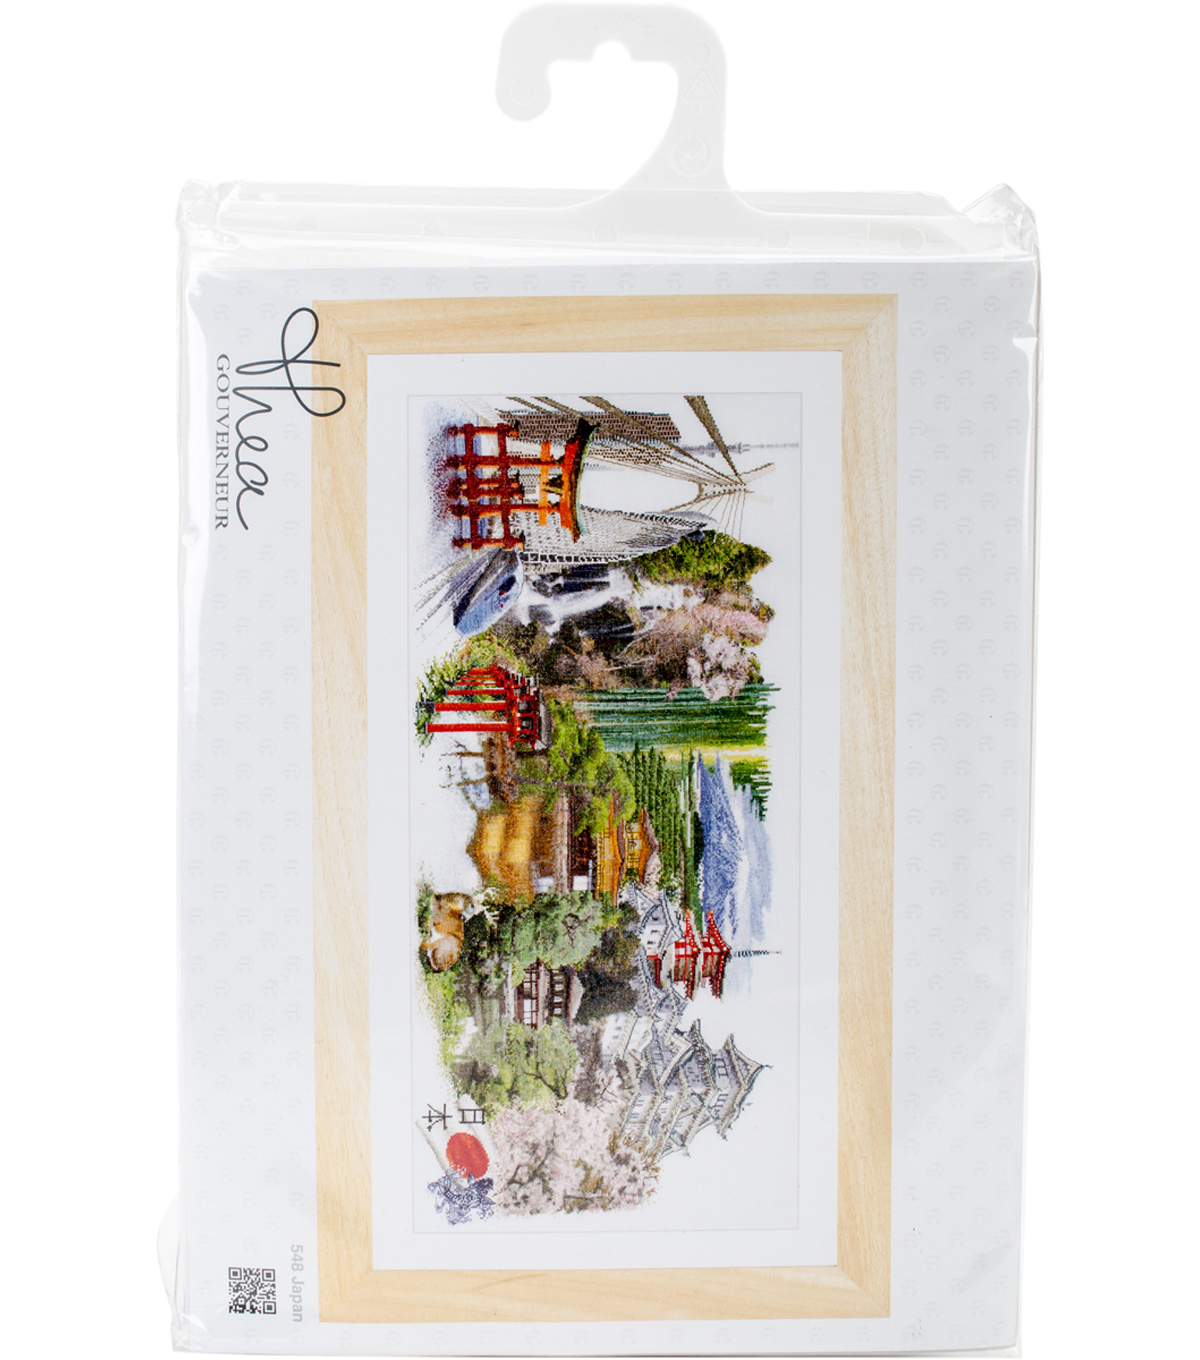 Japan On Aida Counted Cross Stitch Kit 18 Count